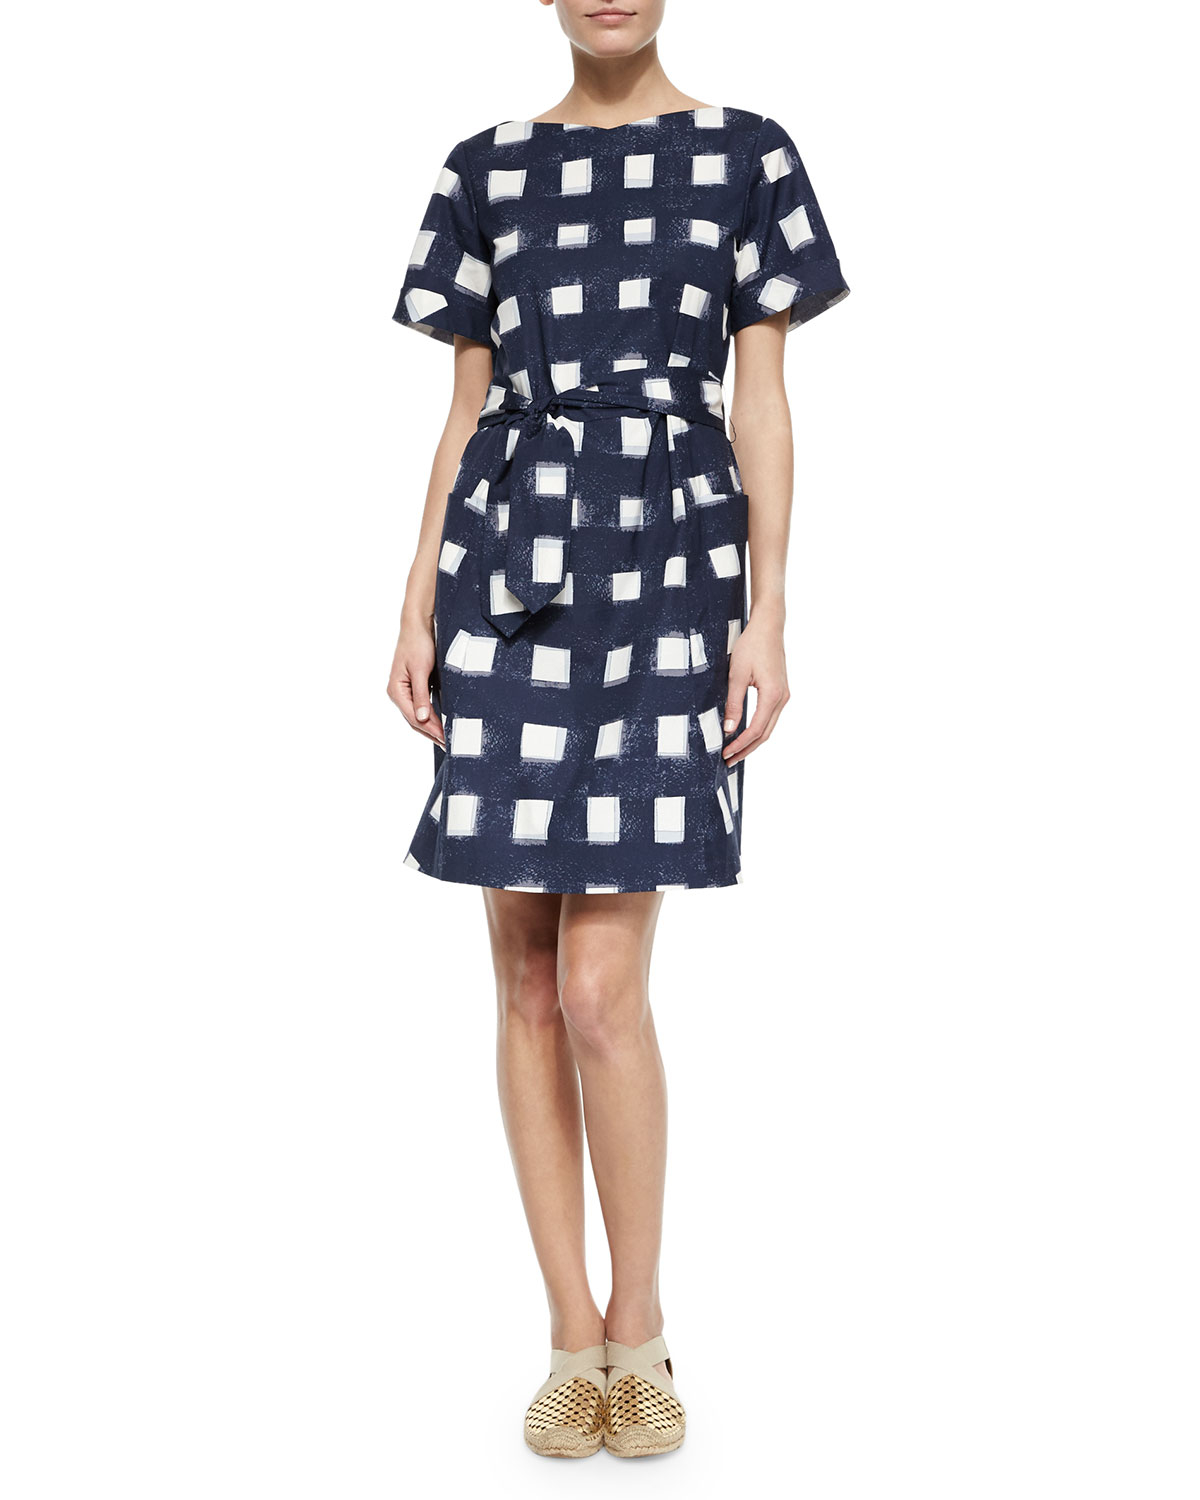 Tory burch tie front poplin square dress in black lyst for Tory burch fashion island